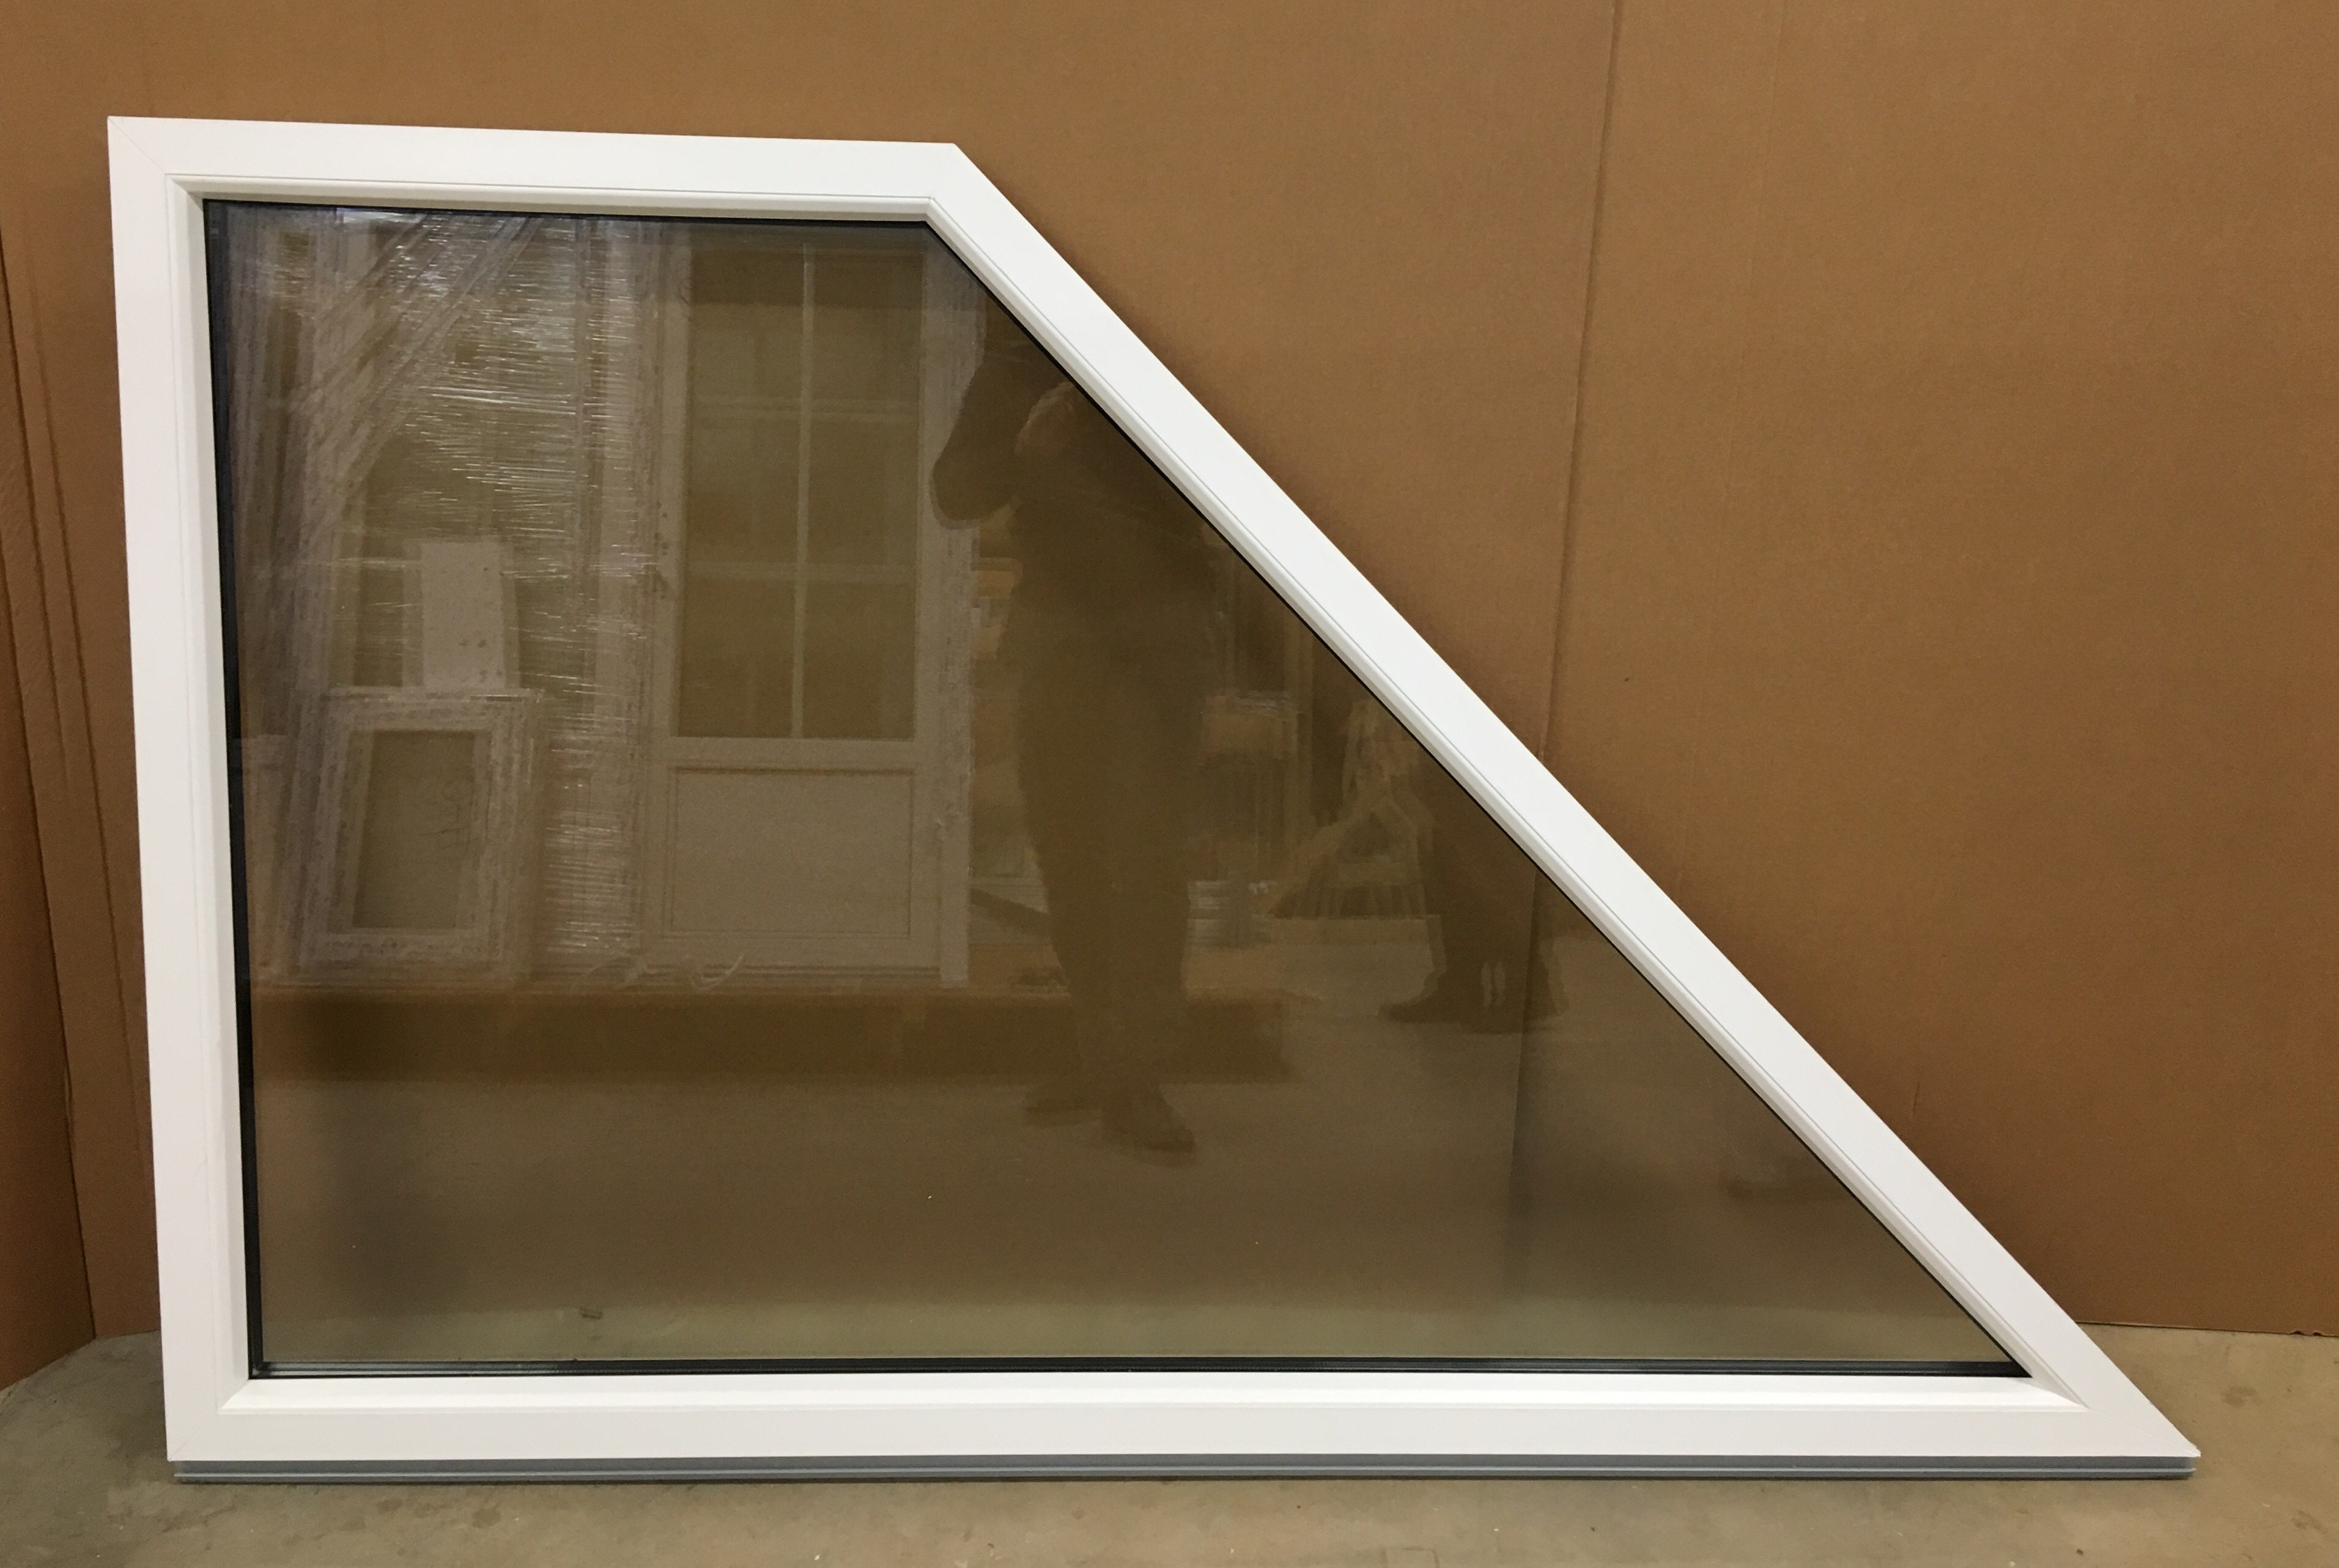 Fixed Pvc Trapezium Window Jonas Vinduer